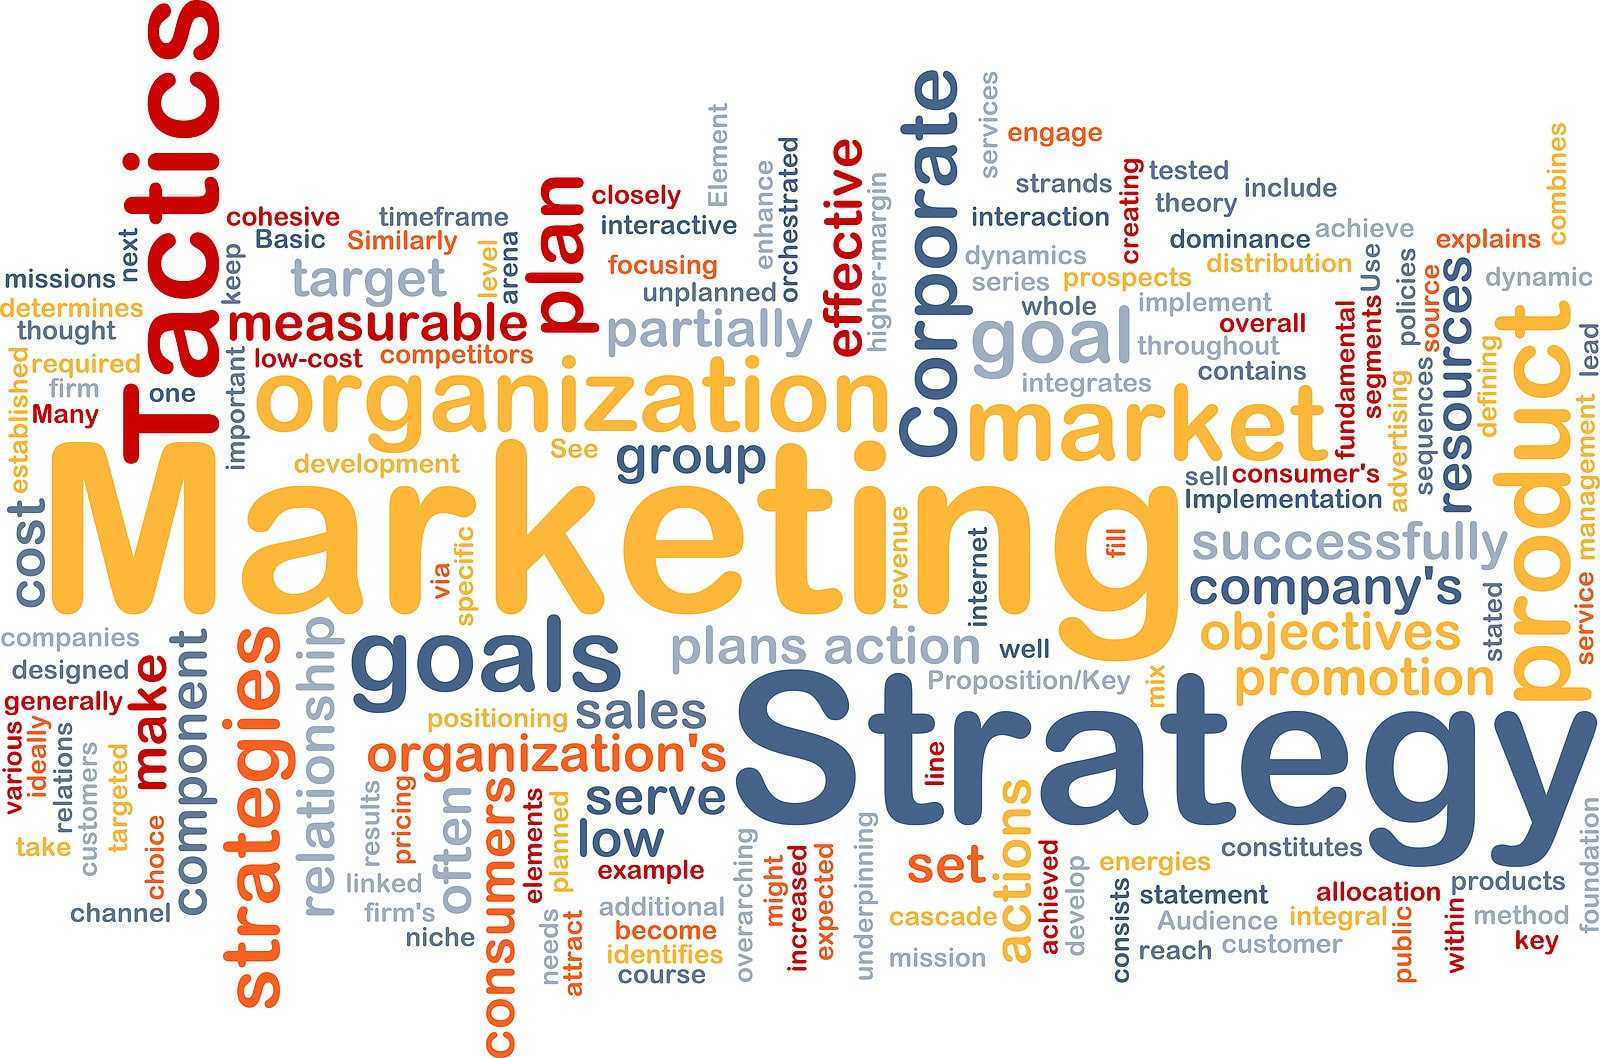 promotion as the key aspect of a successful product Business success depends upon successful marketing share this business success depends upon successful marketing you must not only know your product.